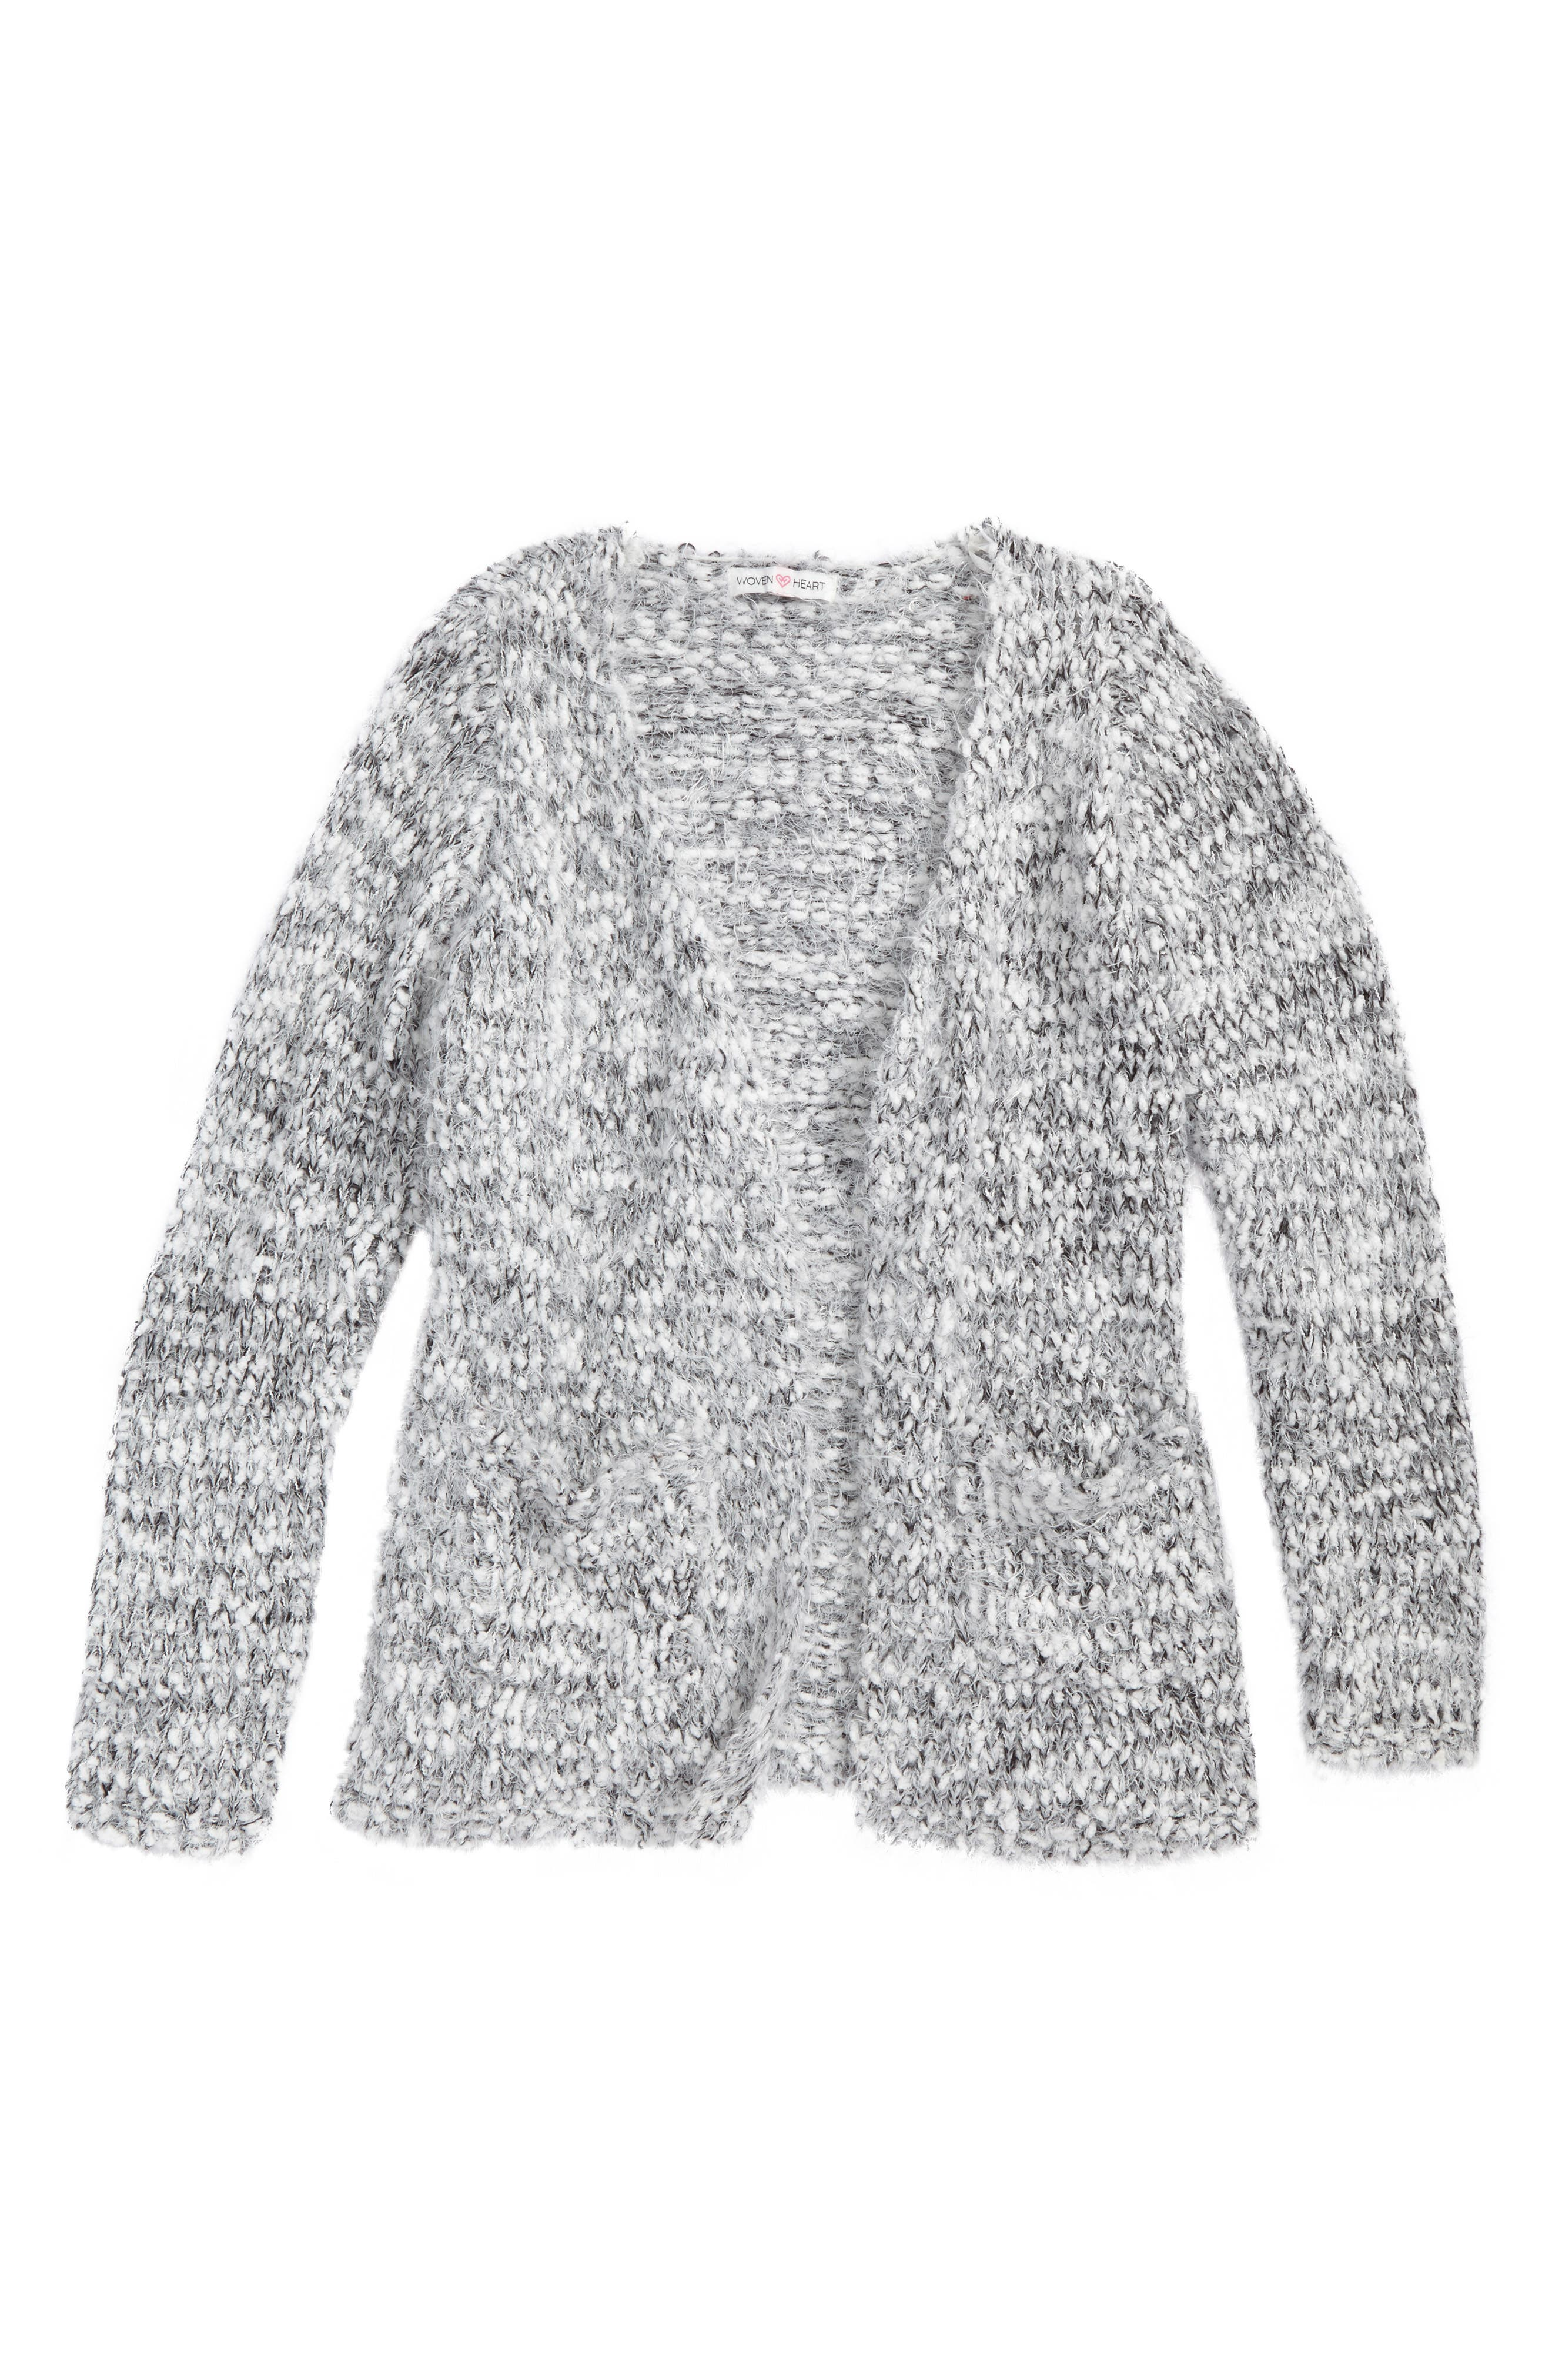 Woven Heart Open Stich Knit Cardigan (Big Girls)